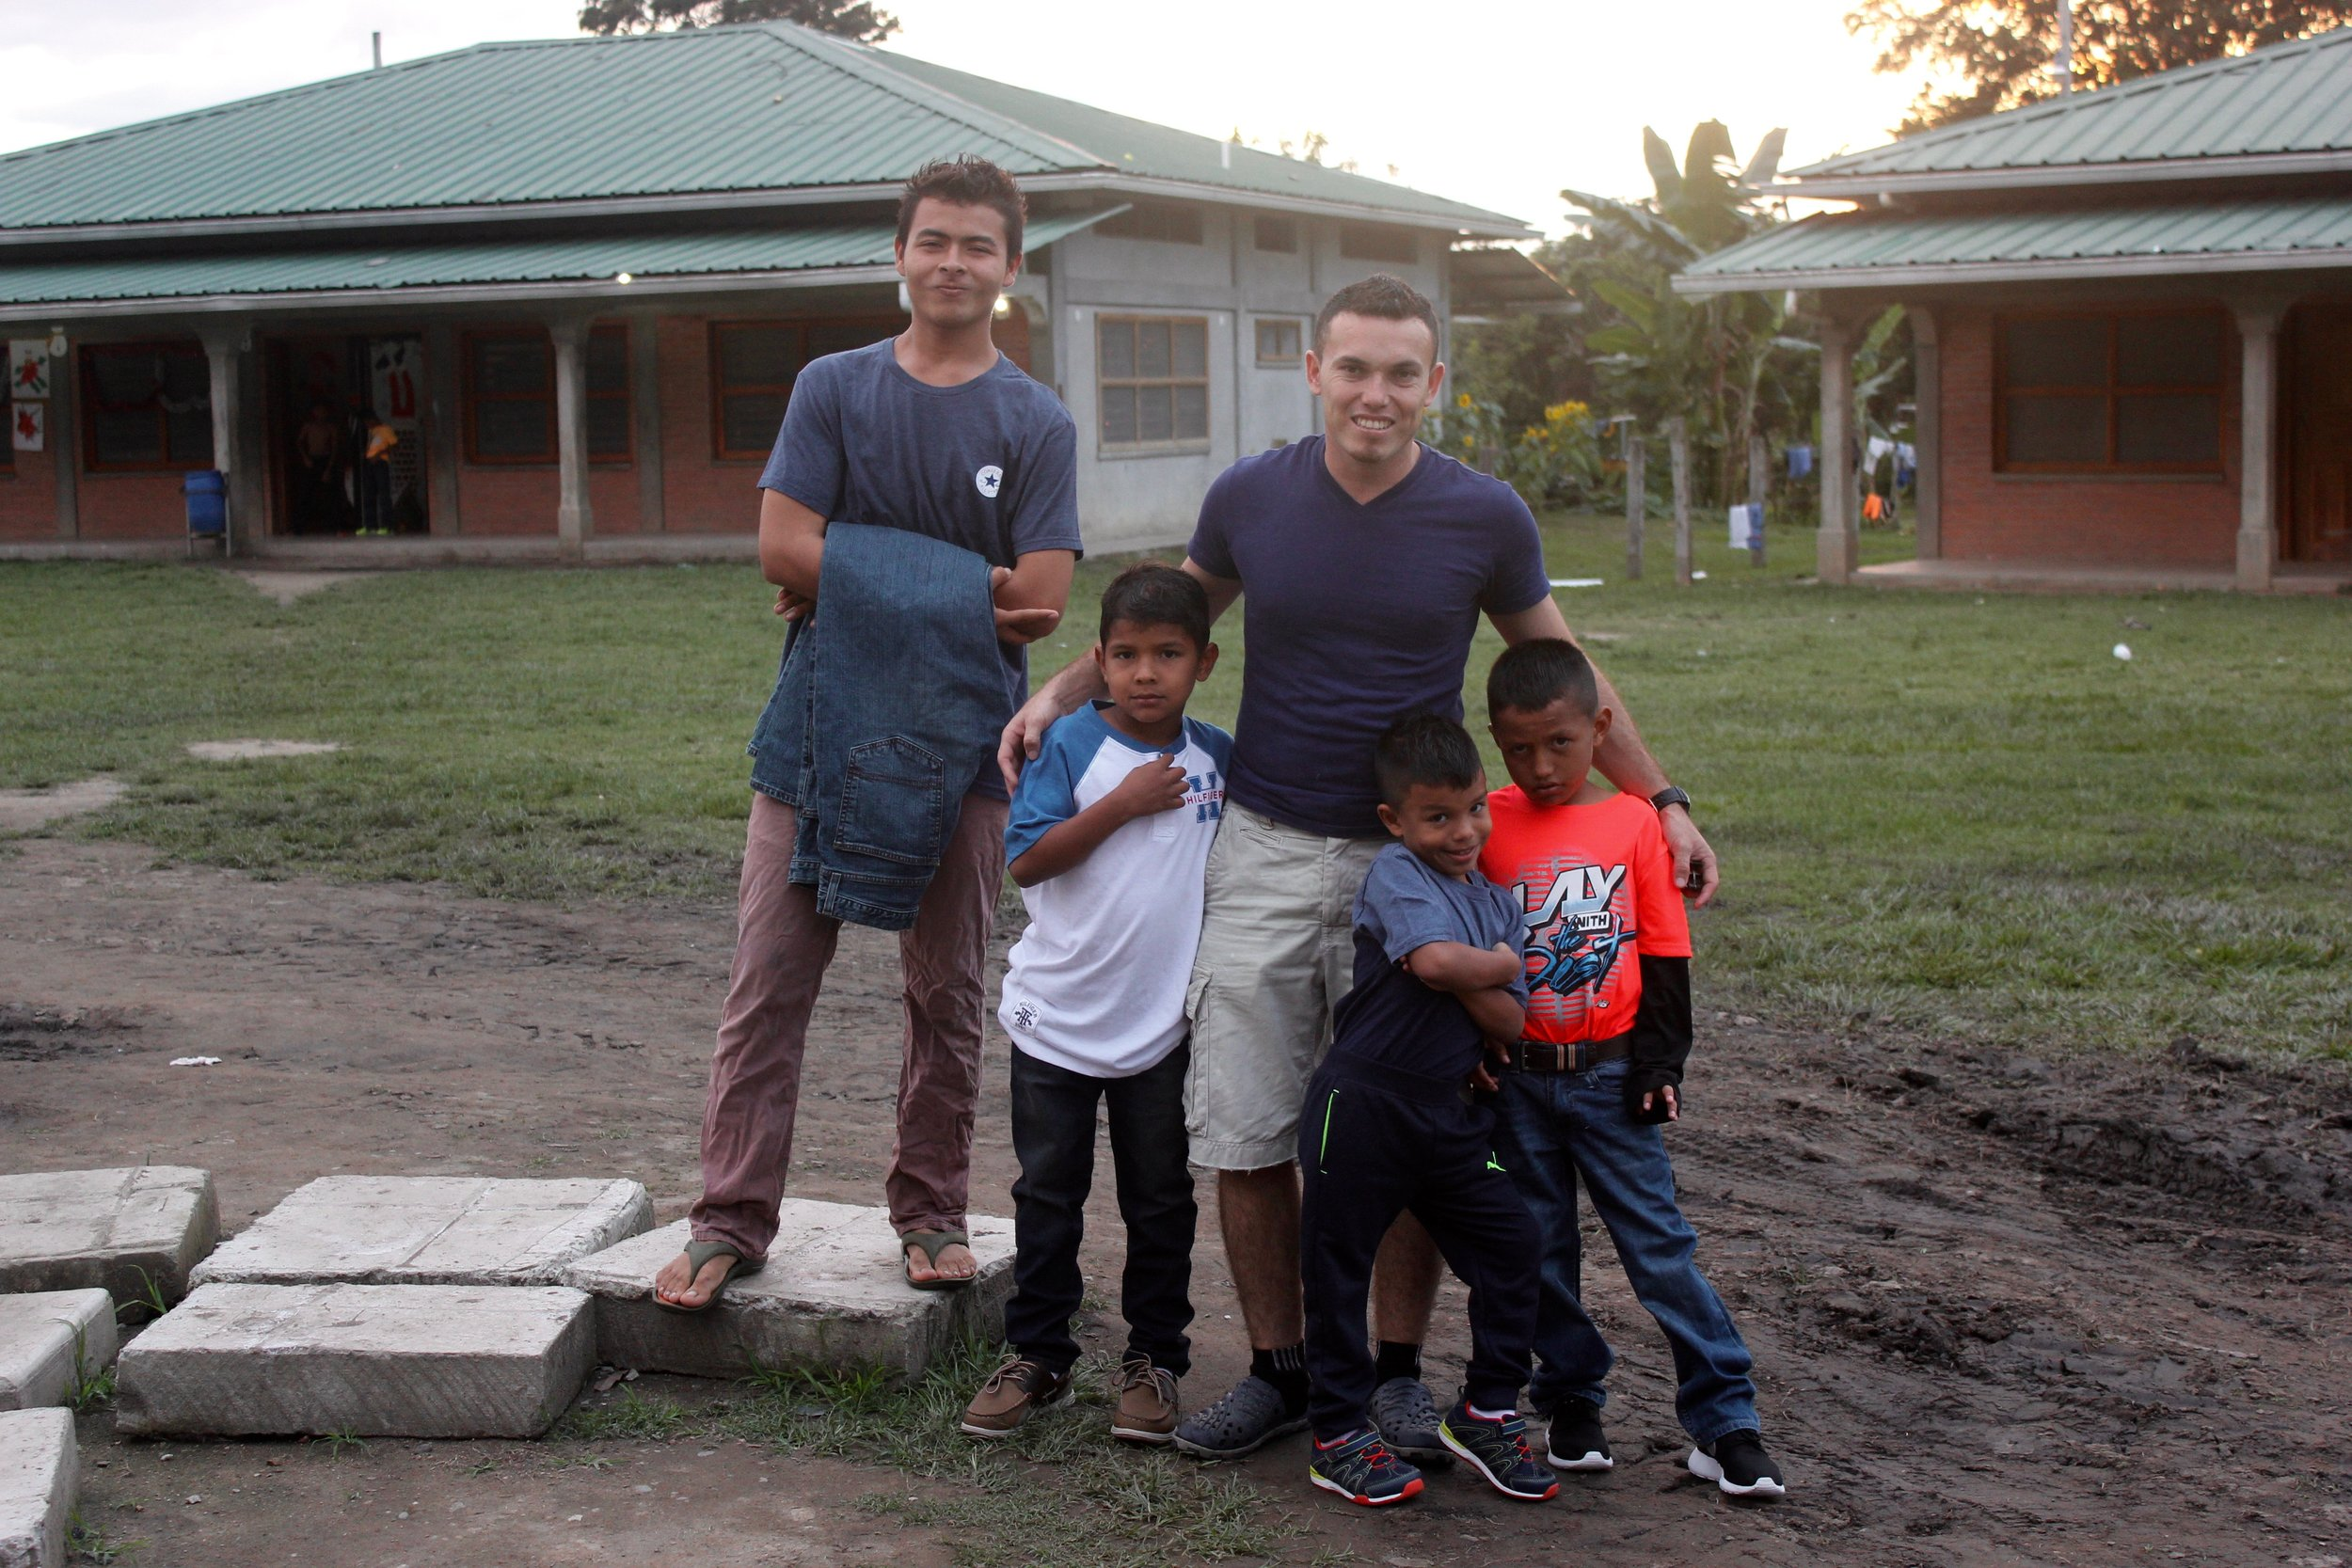 Claudio (second from left) on Christmas with Padrino Antonio and other boys from his dorm.